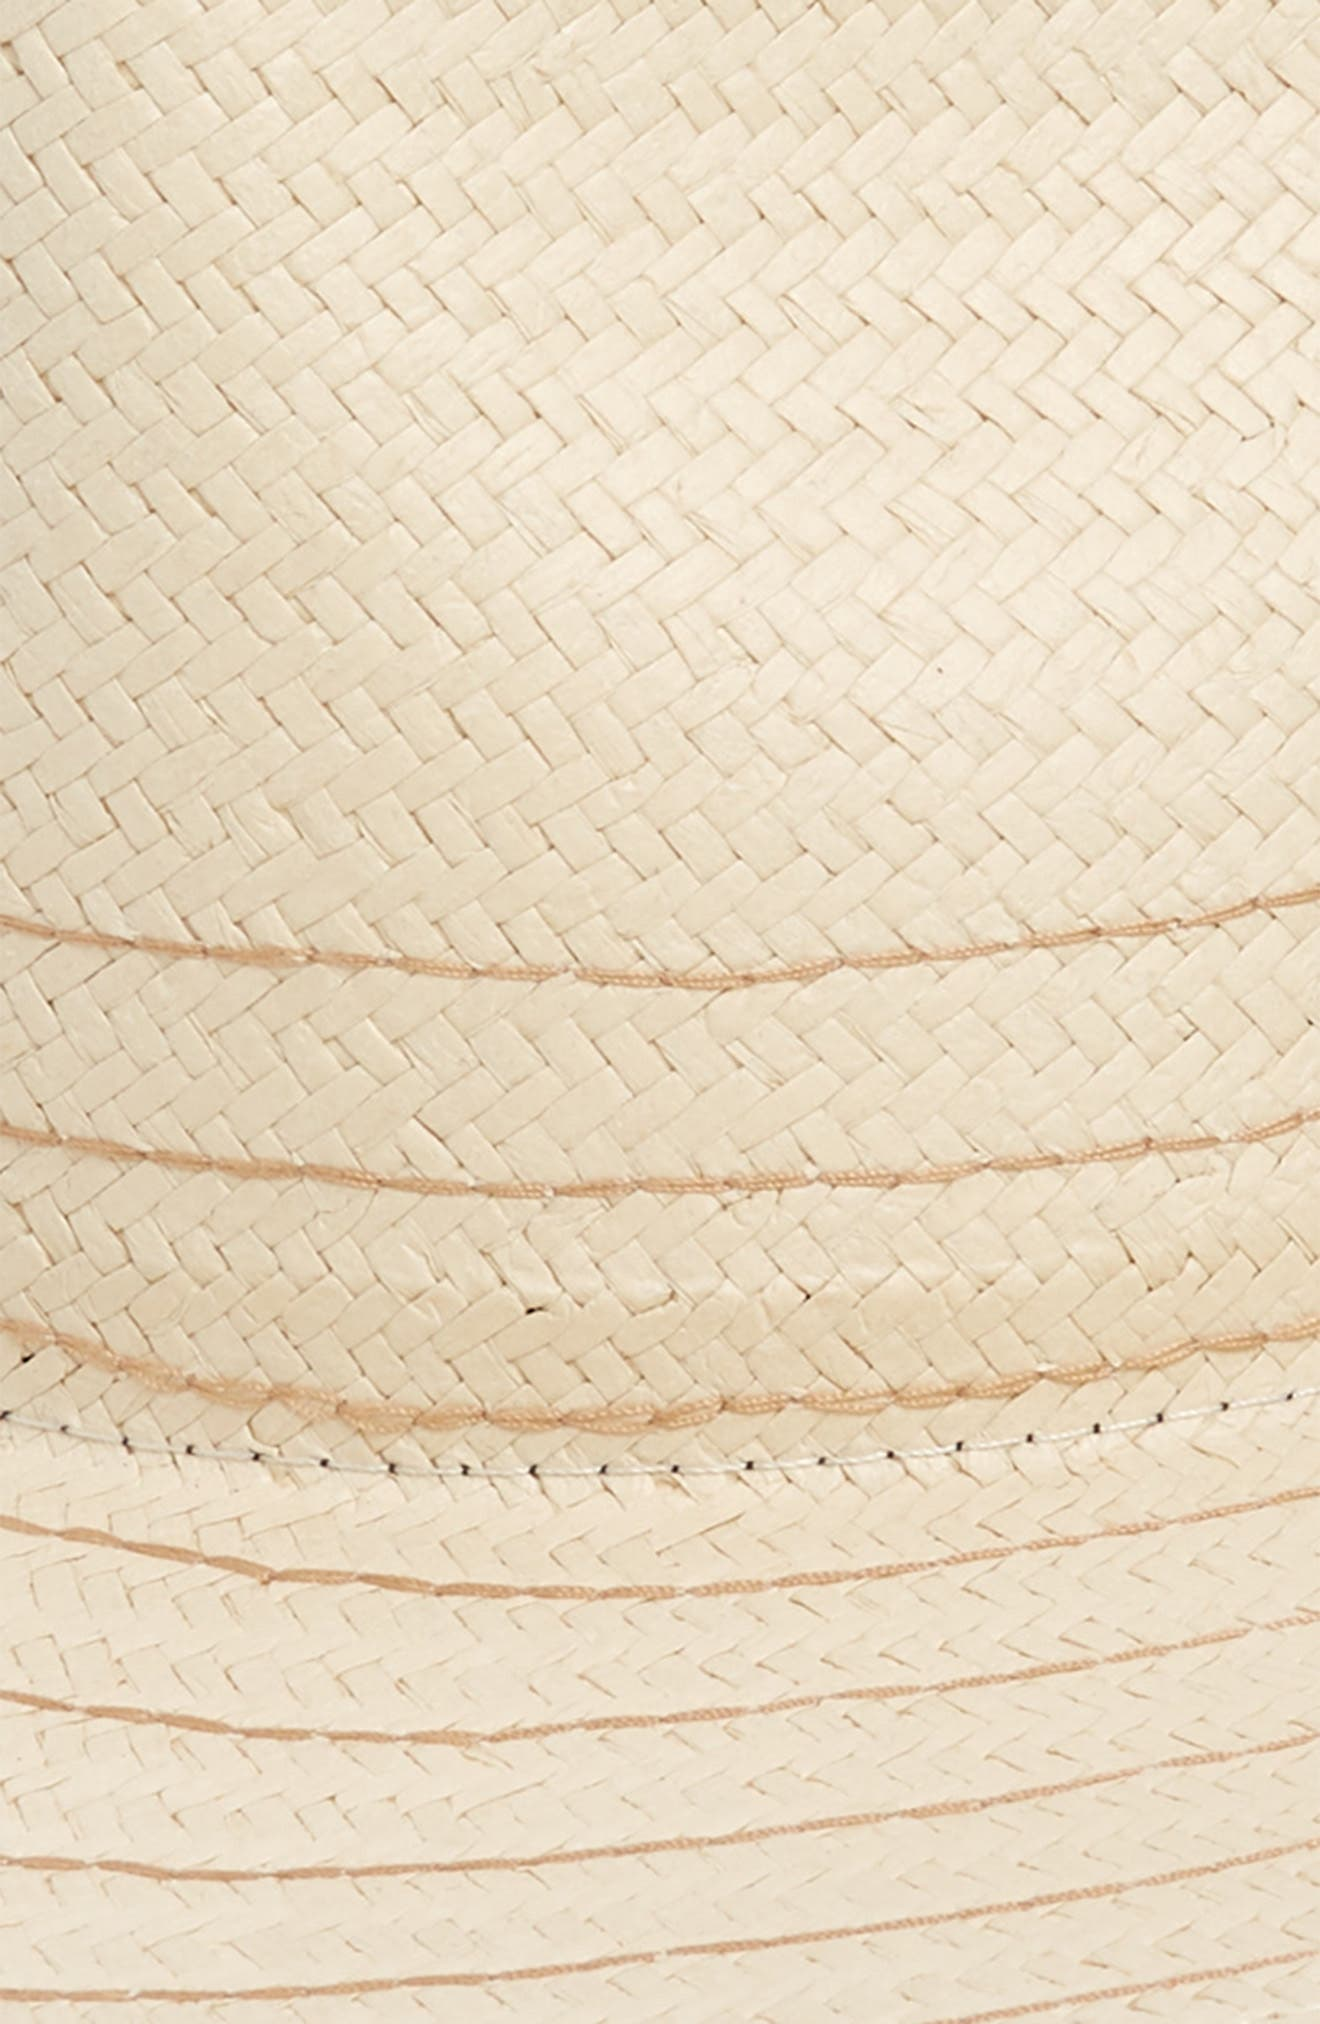 RAG & BONE, Packable Straw Fedora, Alternate thumbnail 2, color, NATURAL